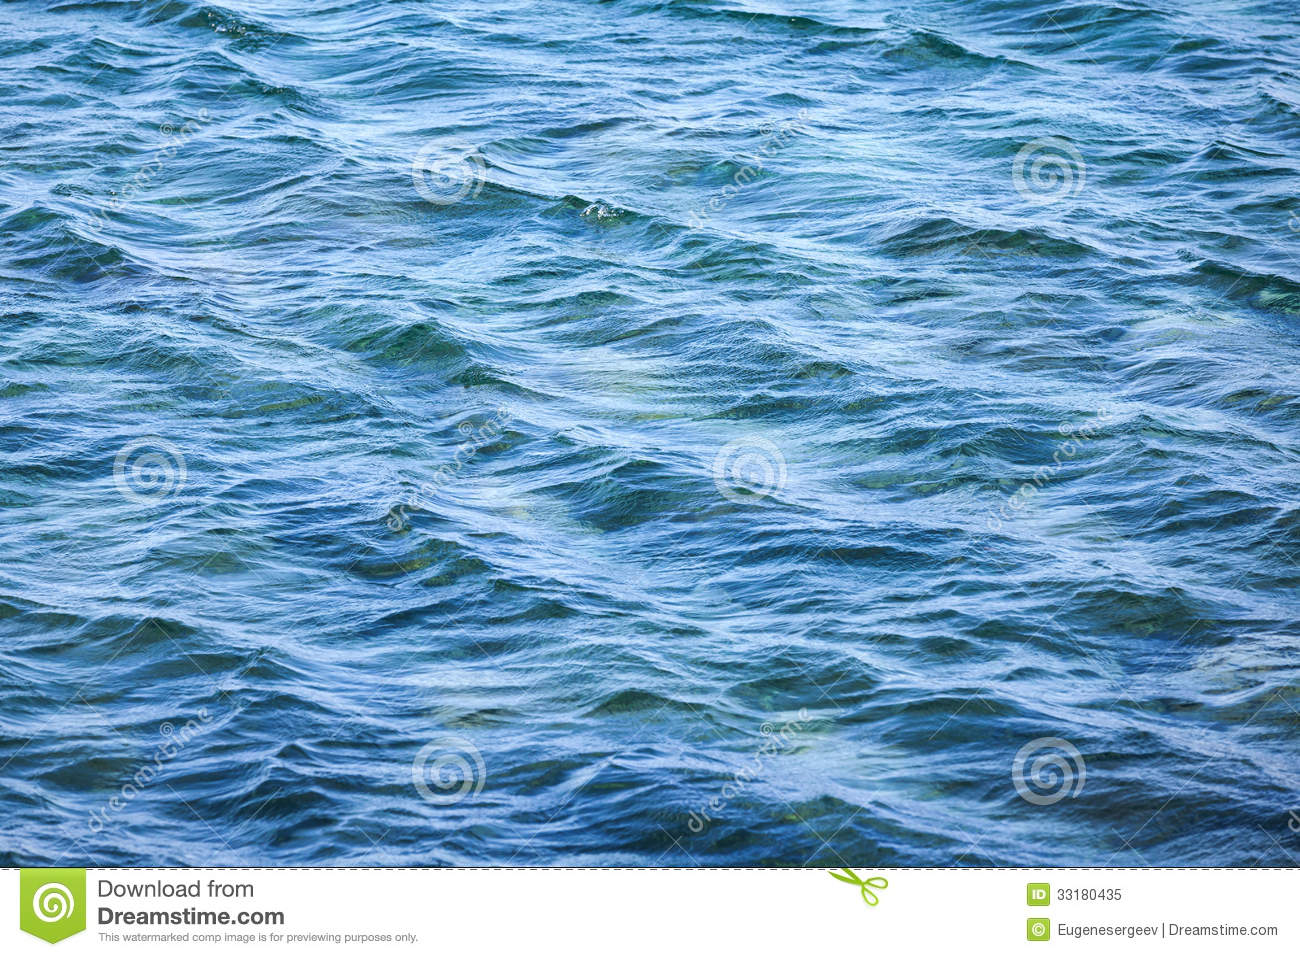 3d Wallpaper Pack Free Download Blue Sea Water Surface With Waves Royalty Free Stock Photo